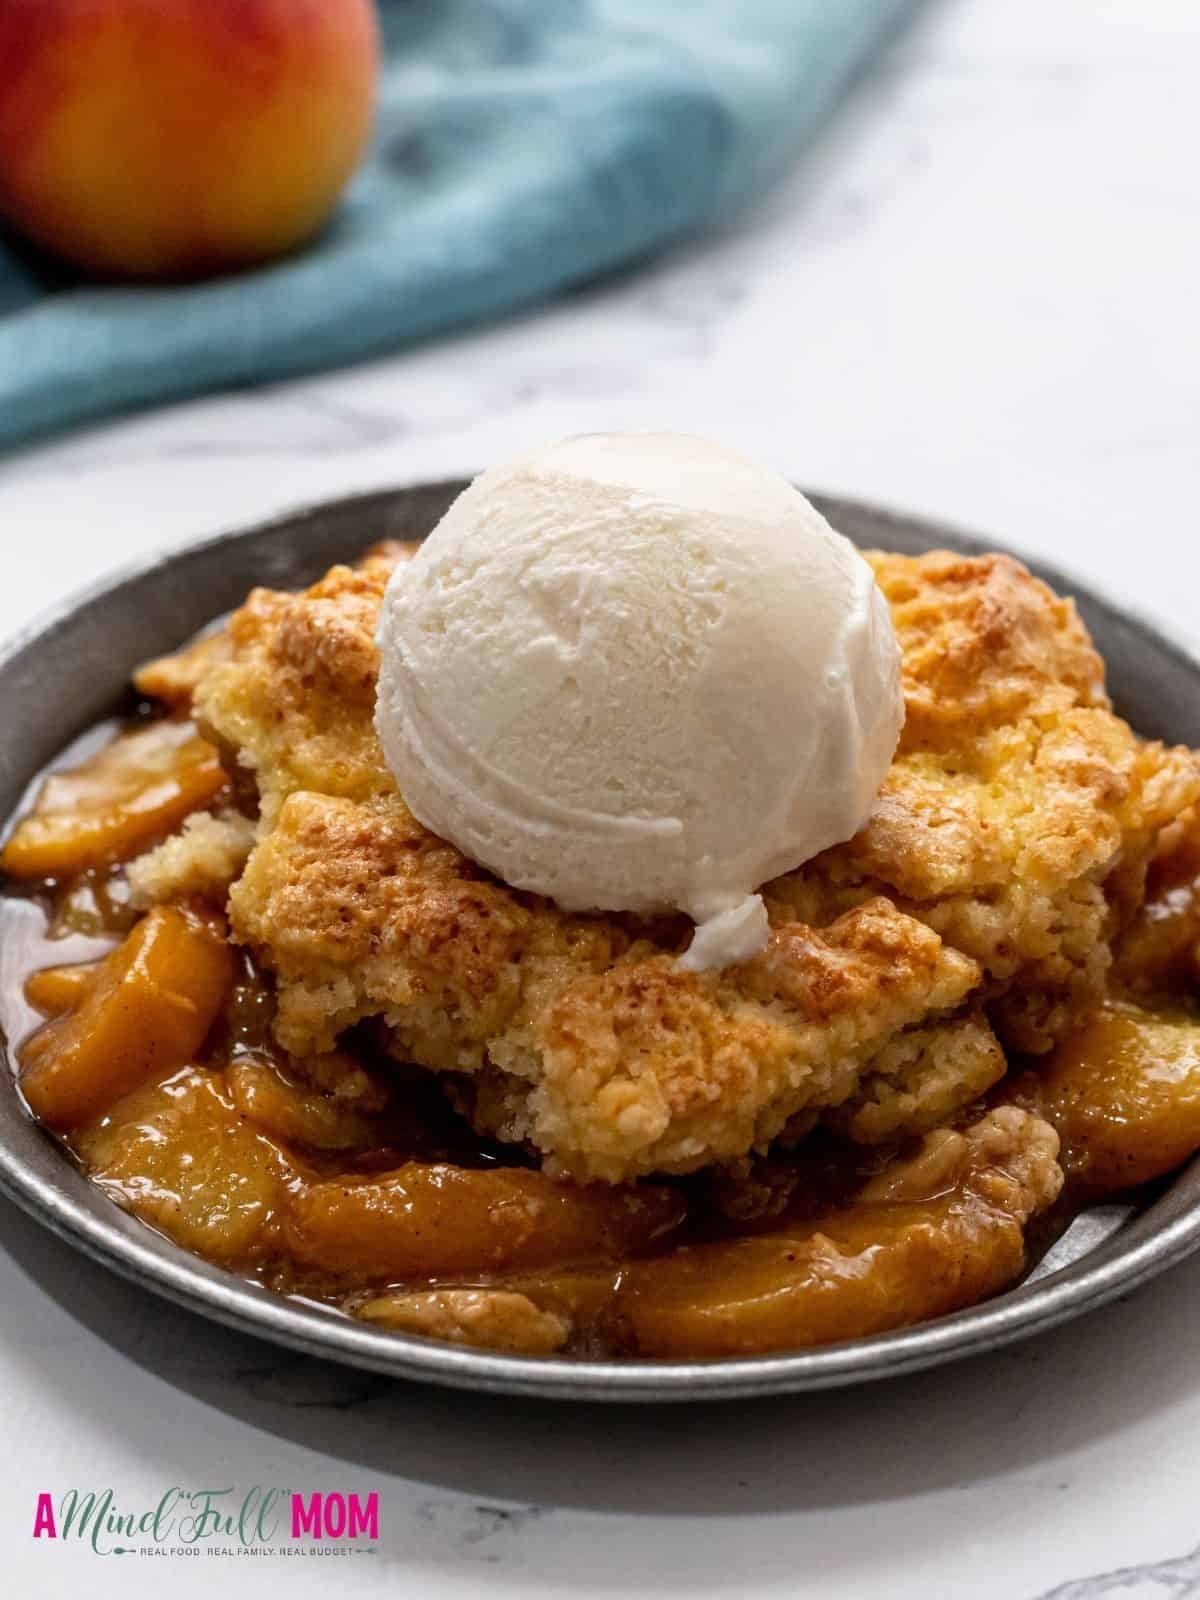 Peach Cobbler dished out on silver plate and topped with a scoop of vanilla ice cream.